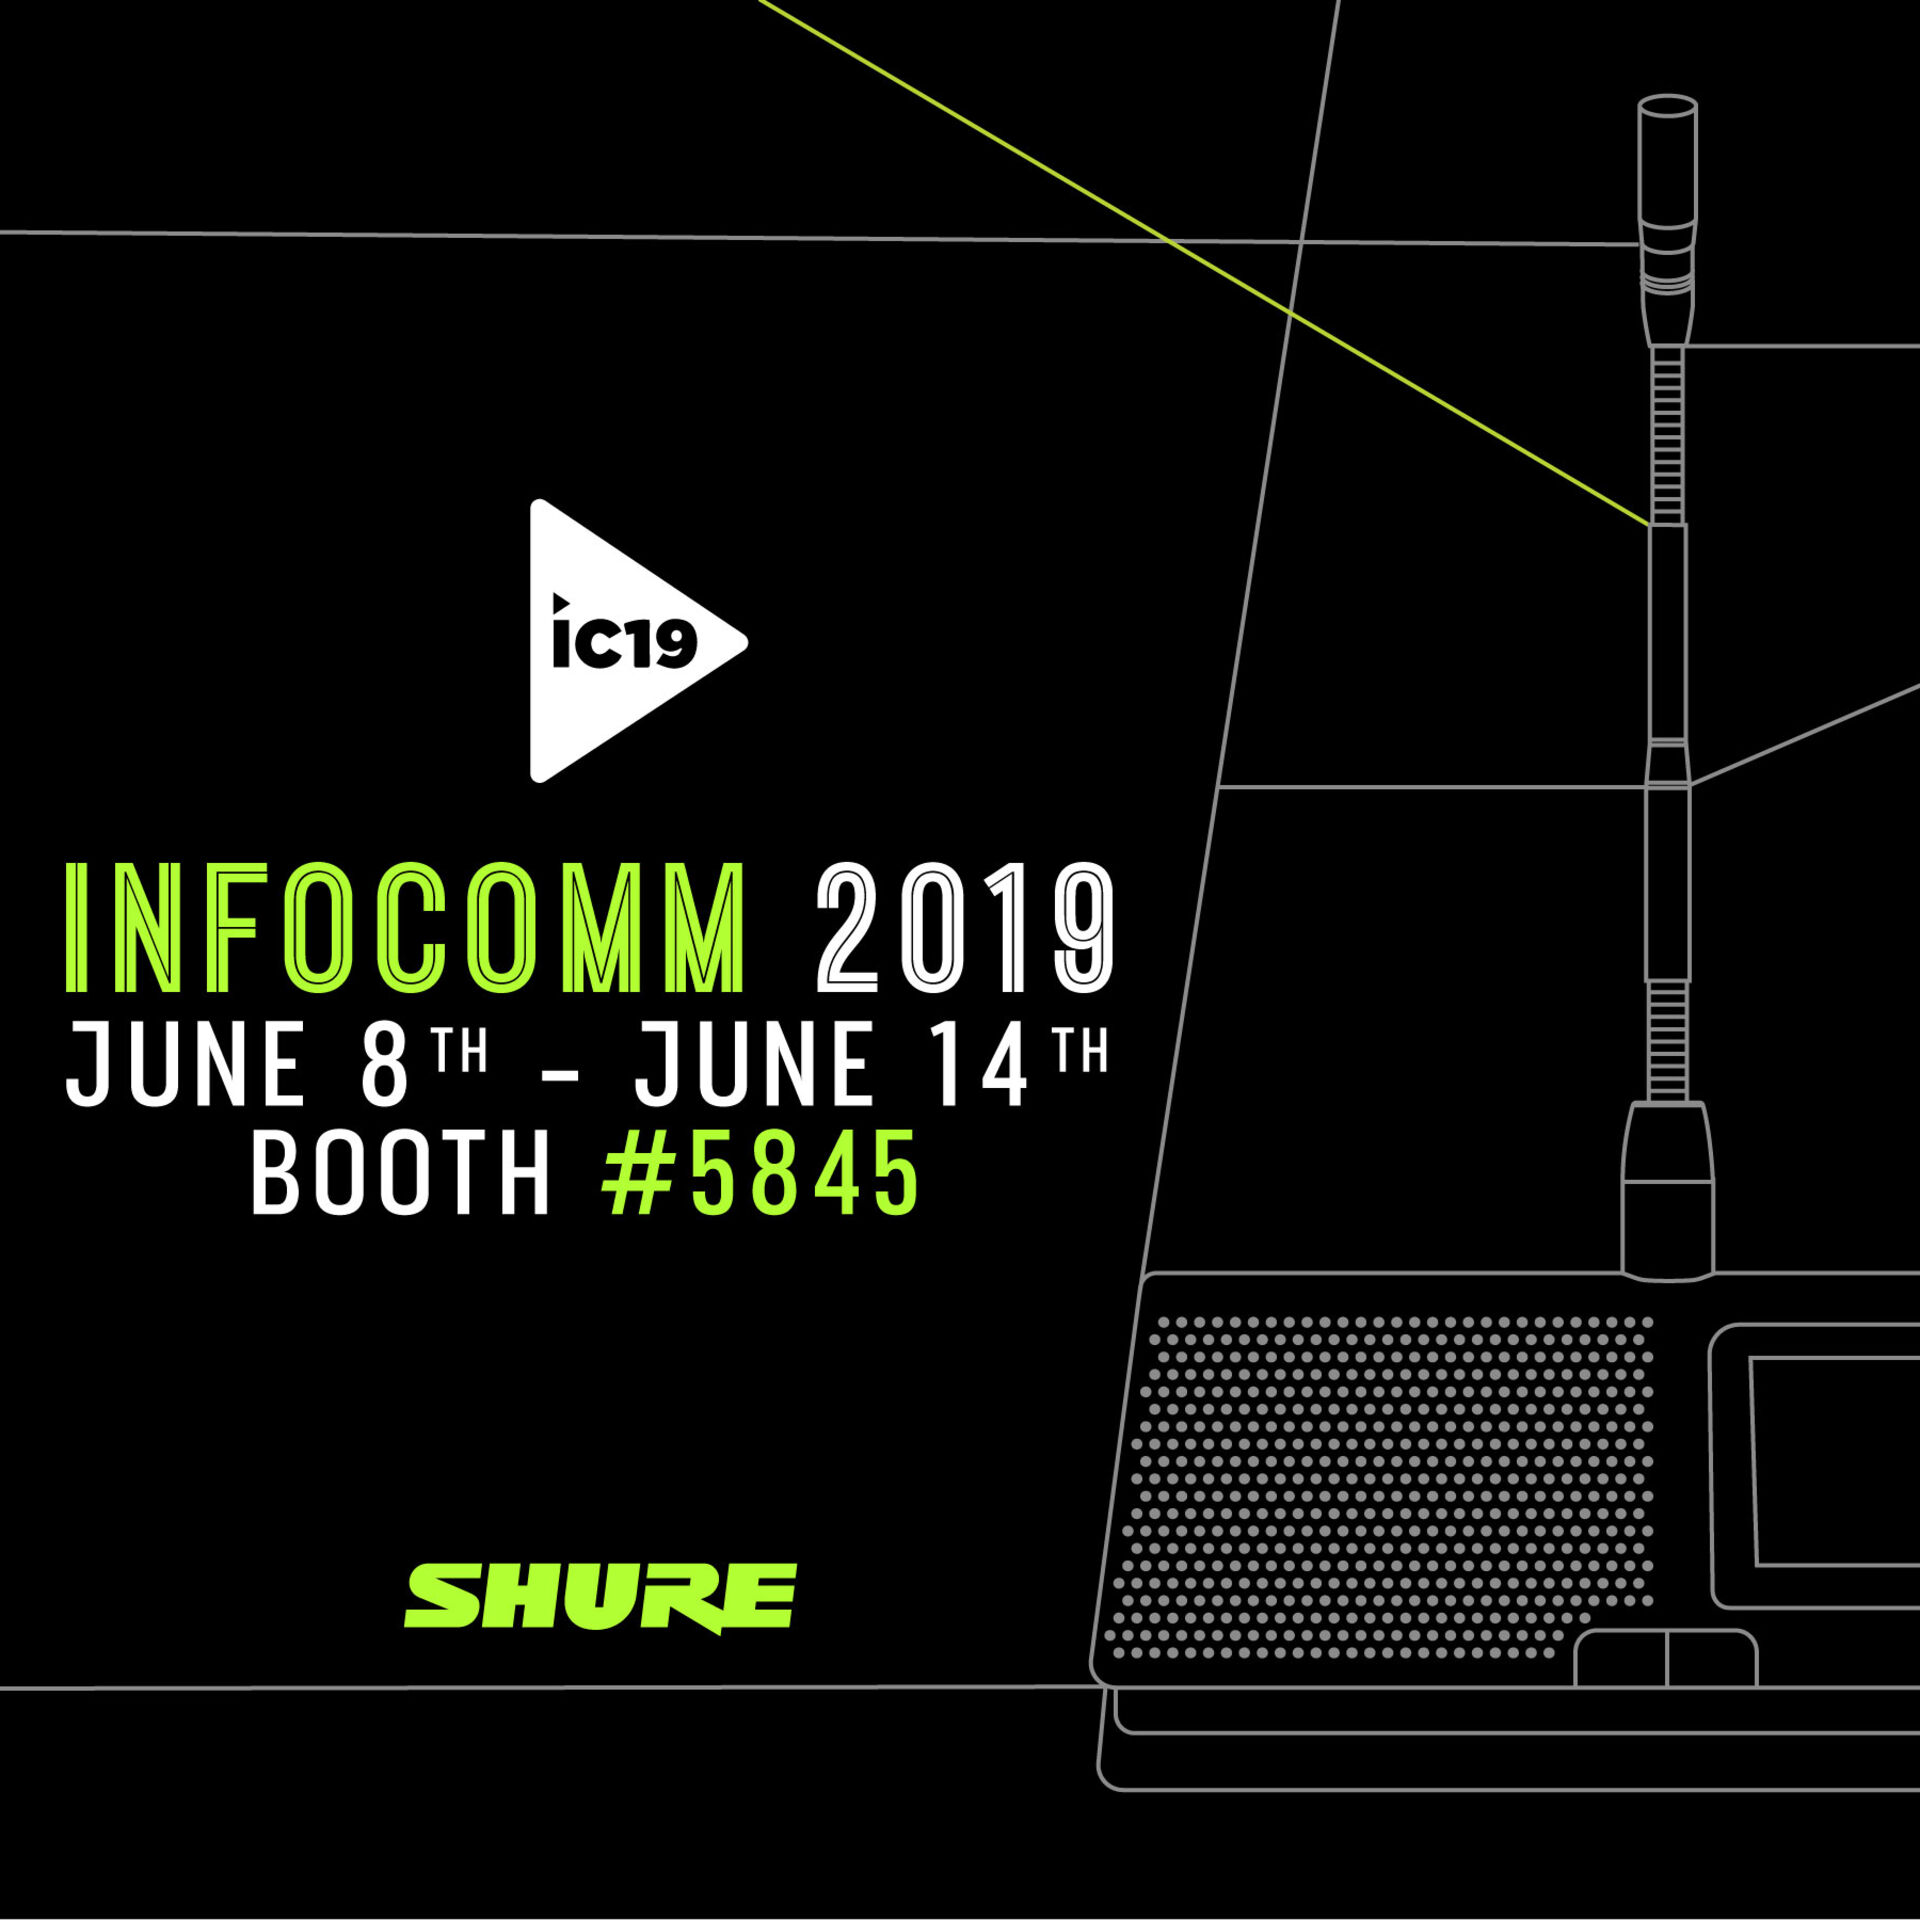 Infocomm 2019: Find Shure at Booth 5845